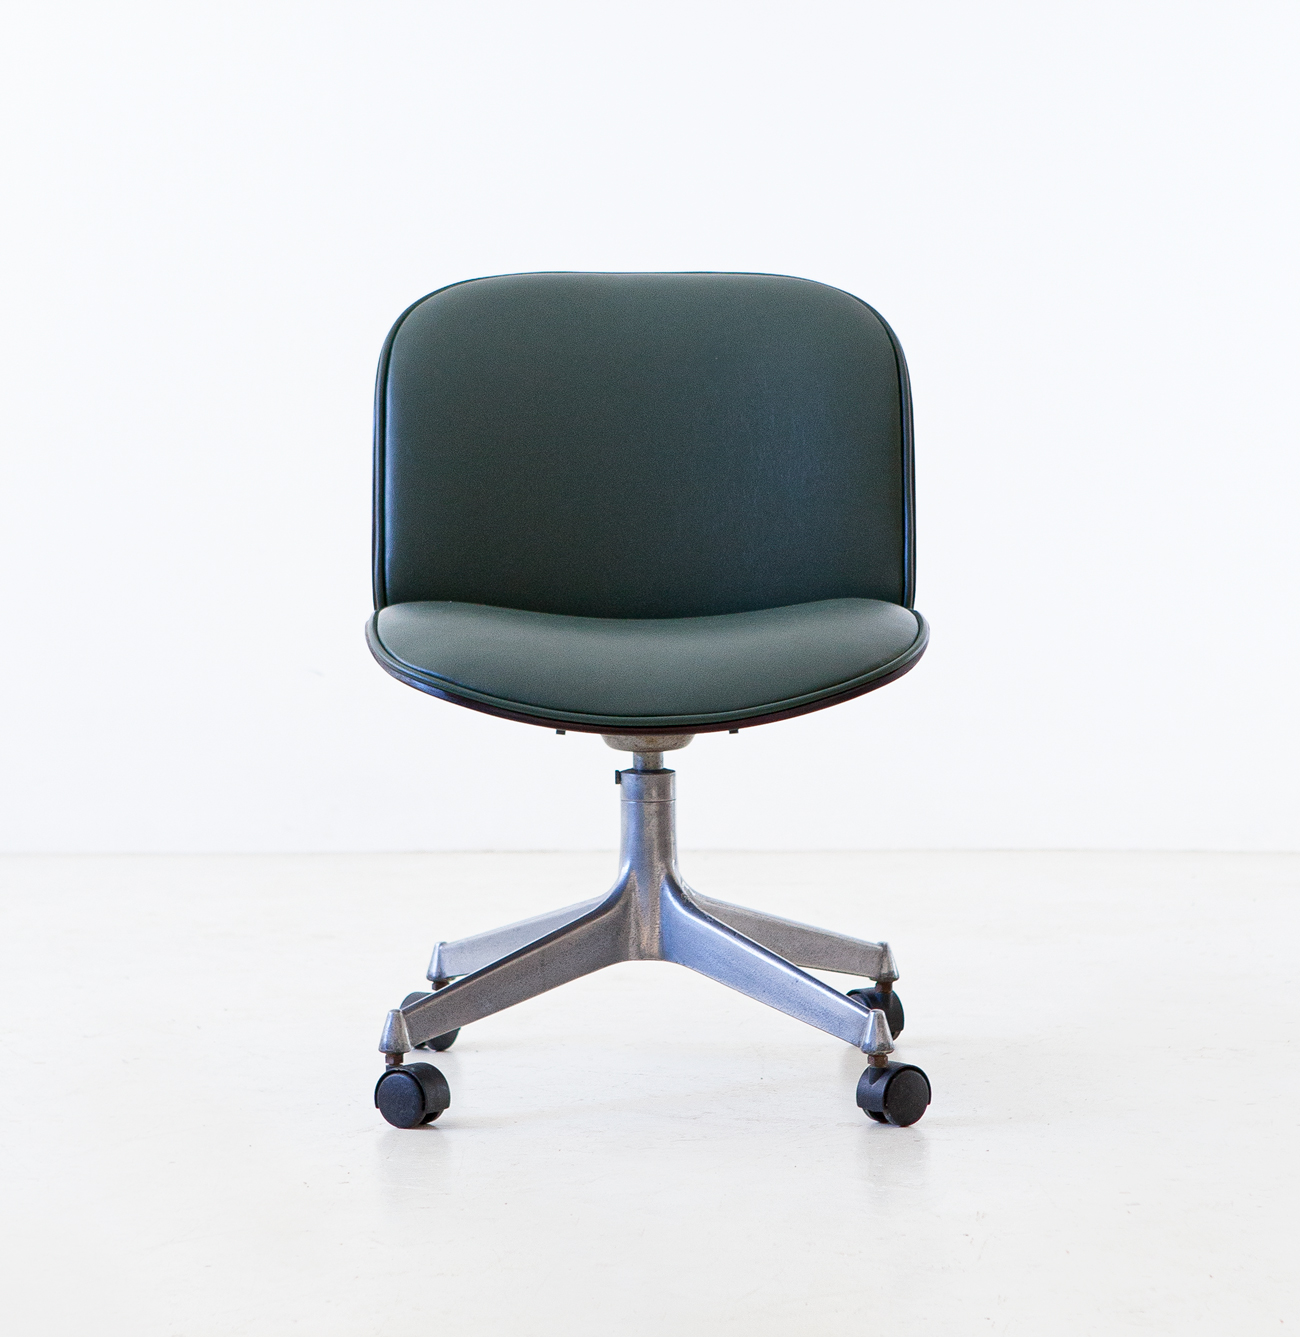 1950s-swivel-desk-chair-by-Ico-Parisi-for-M.i.M.-6-se331